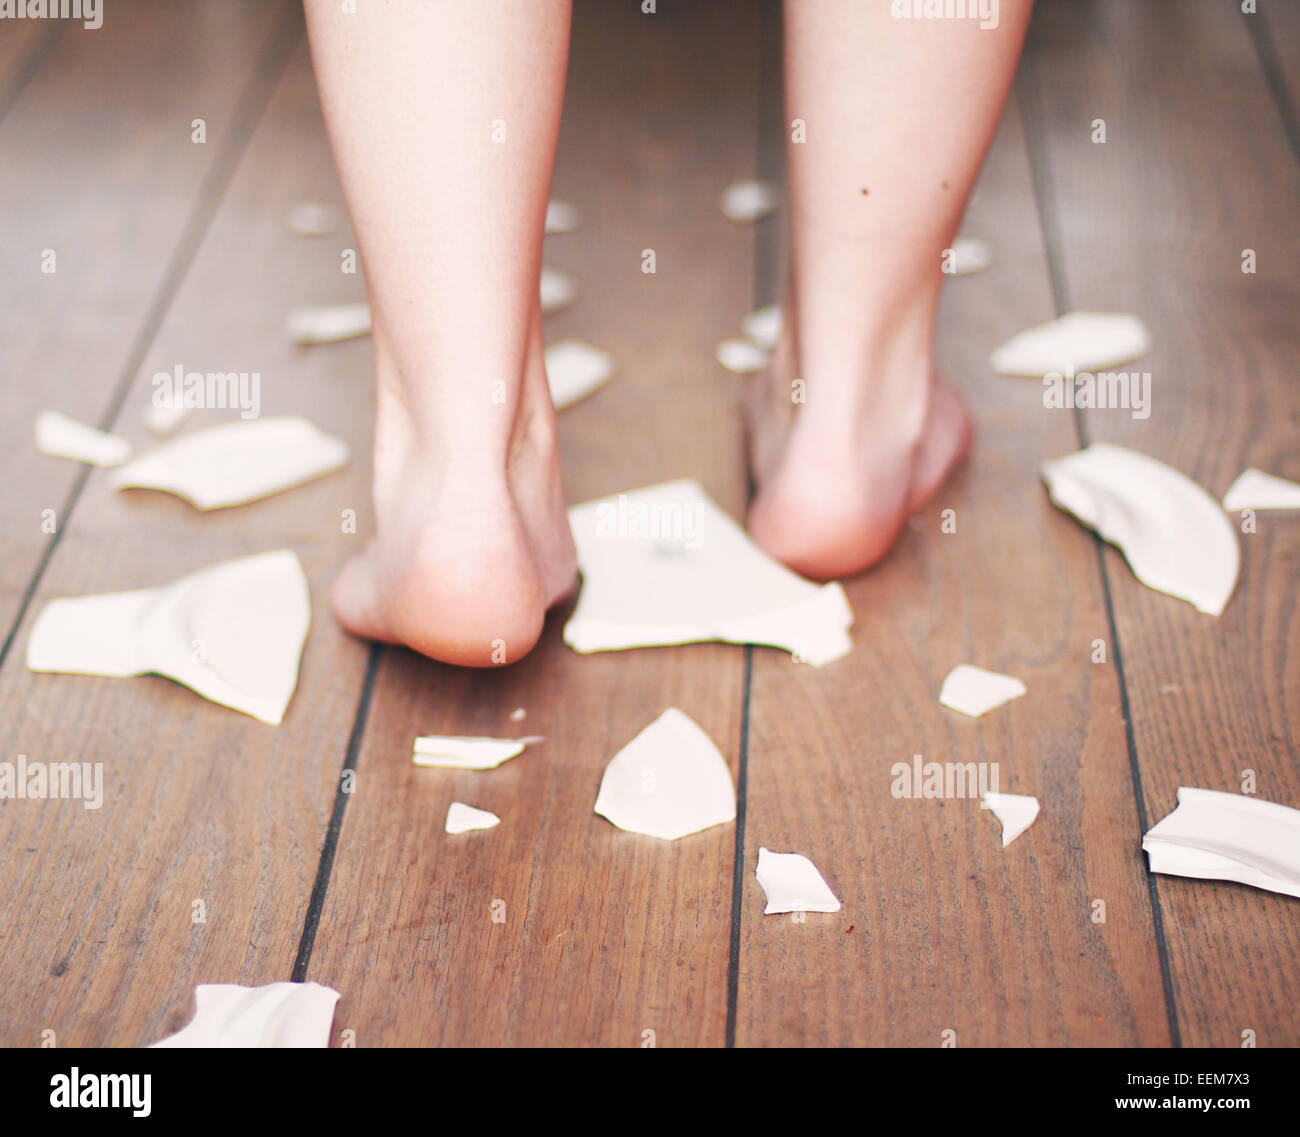 Teenage boy walking among shards of porcelain - Stock Image